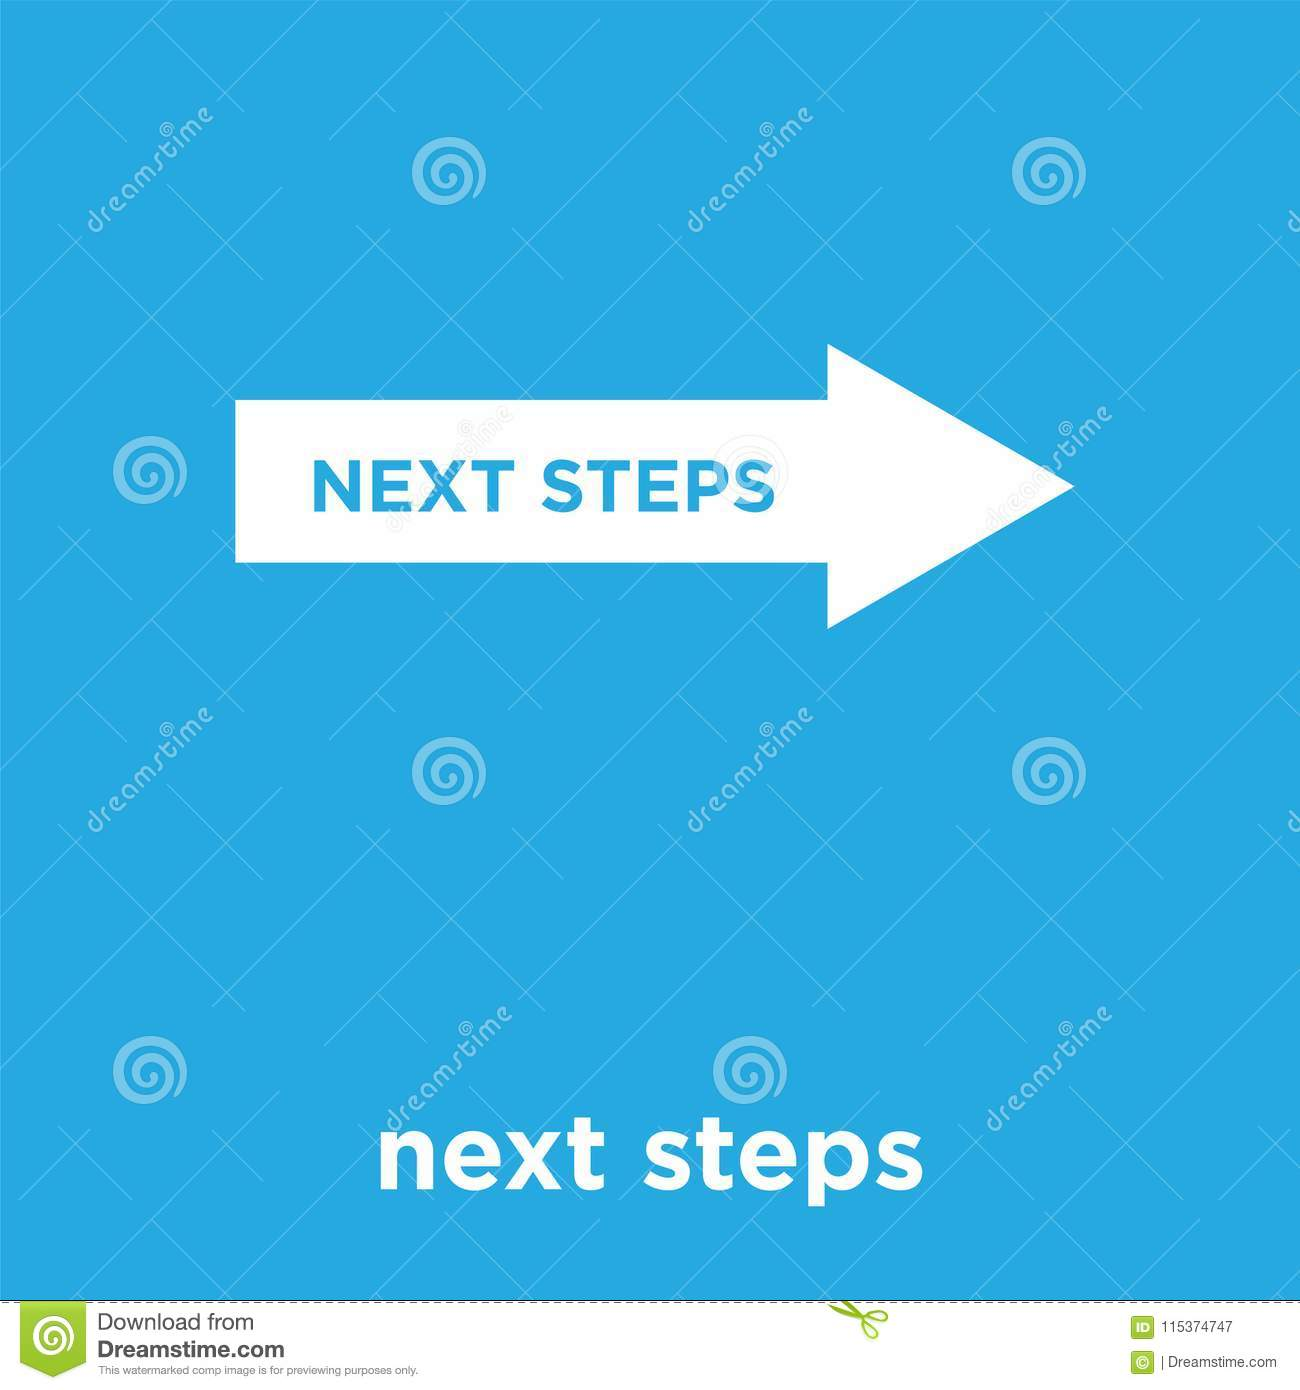 next steps icon isolated on blue background